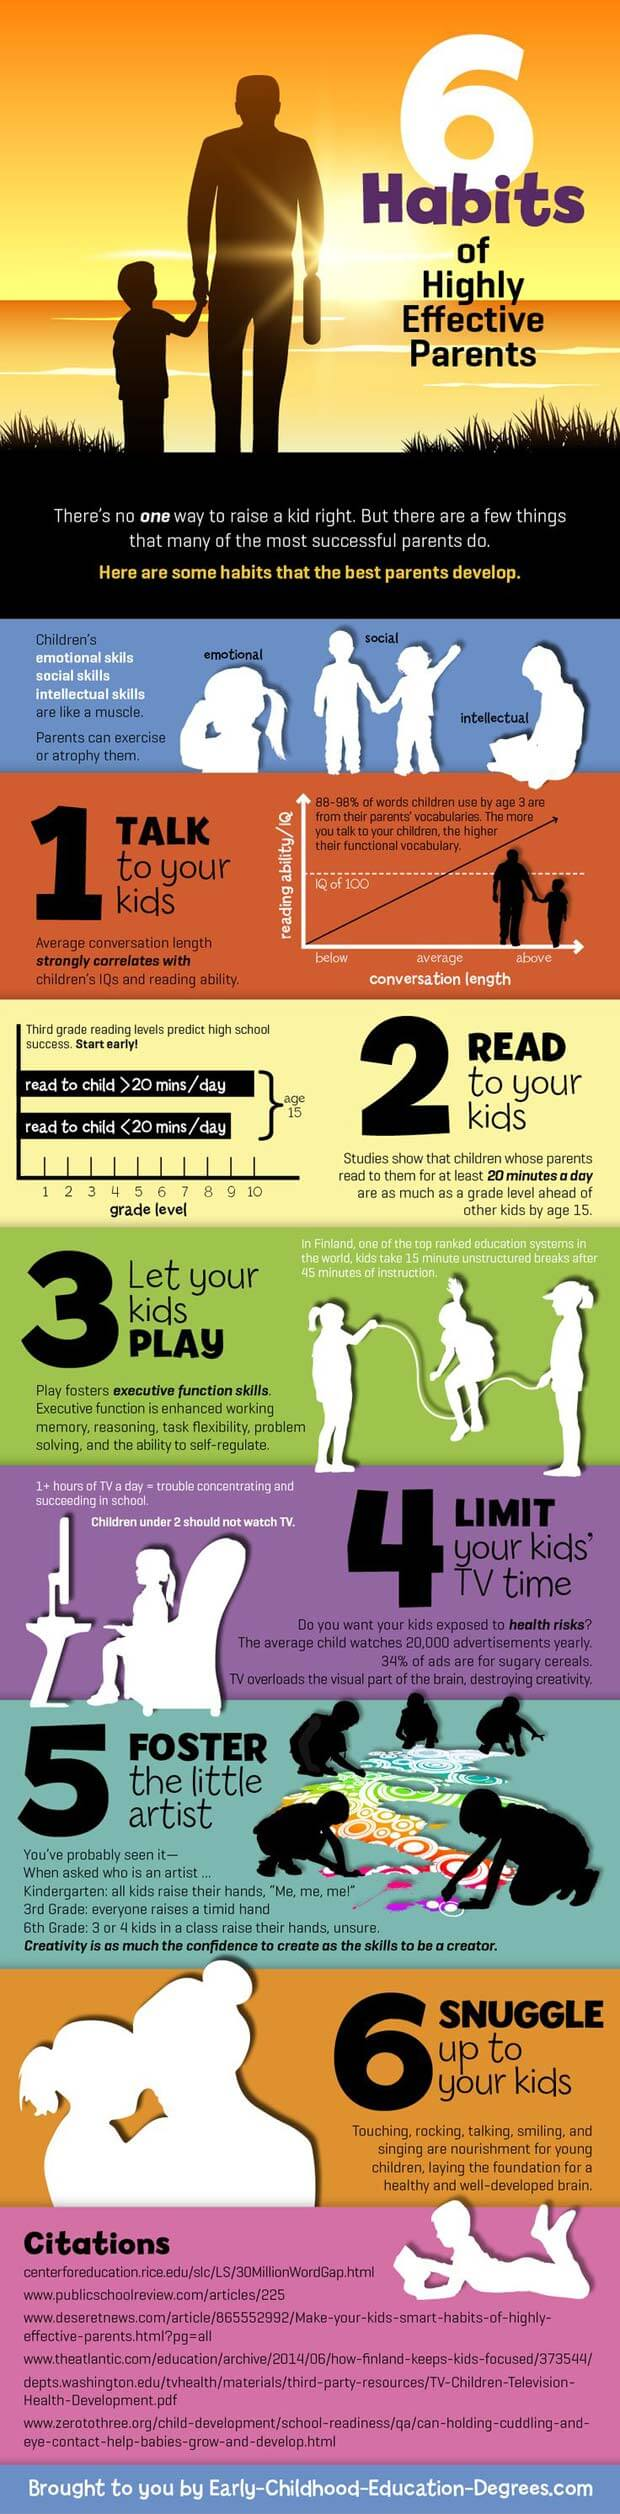 Infographic describing the tips for effective parenting.